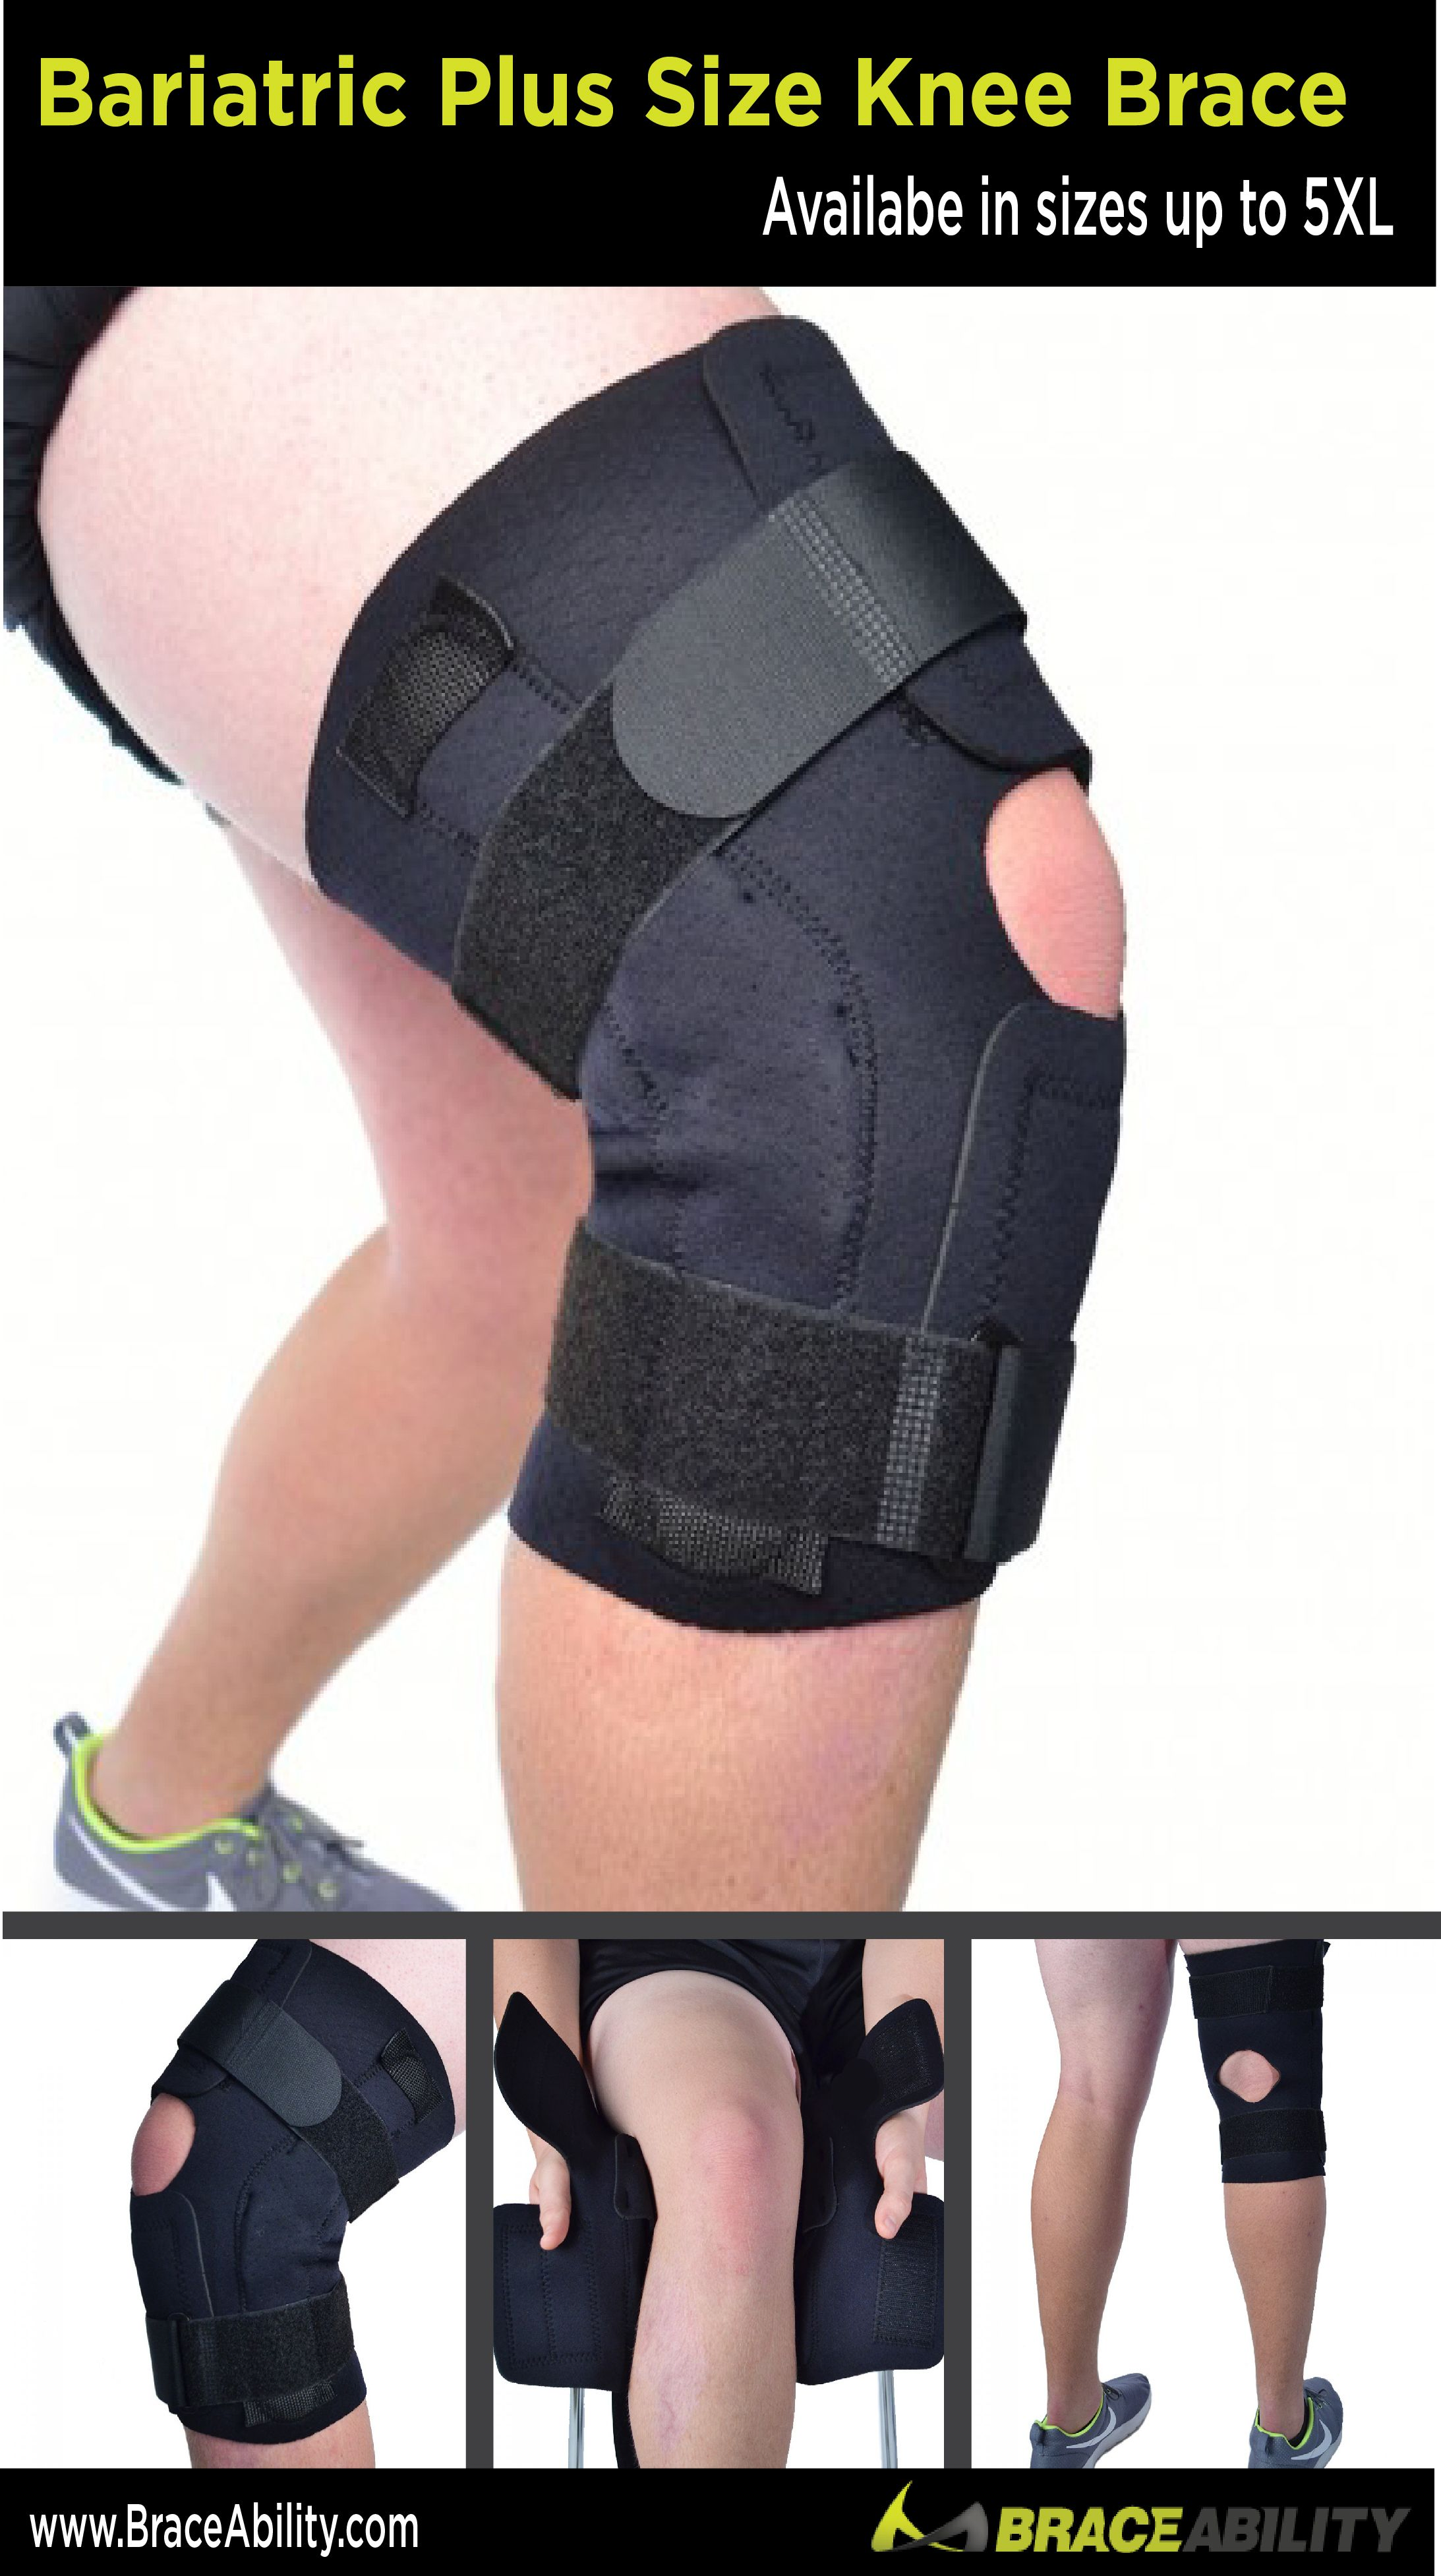 973160bfa1 Got knee pain? Been on that running grind? This plus-size knee brace  provides stability to the knee users can trust (and is a perfect knee brace  for ...